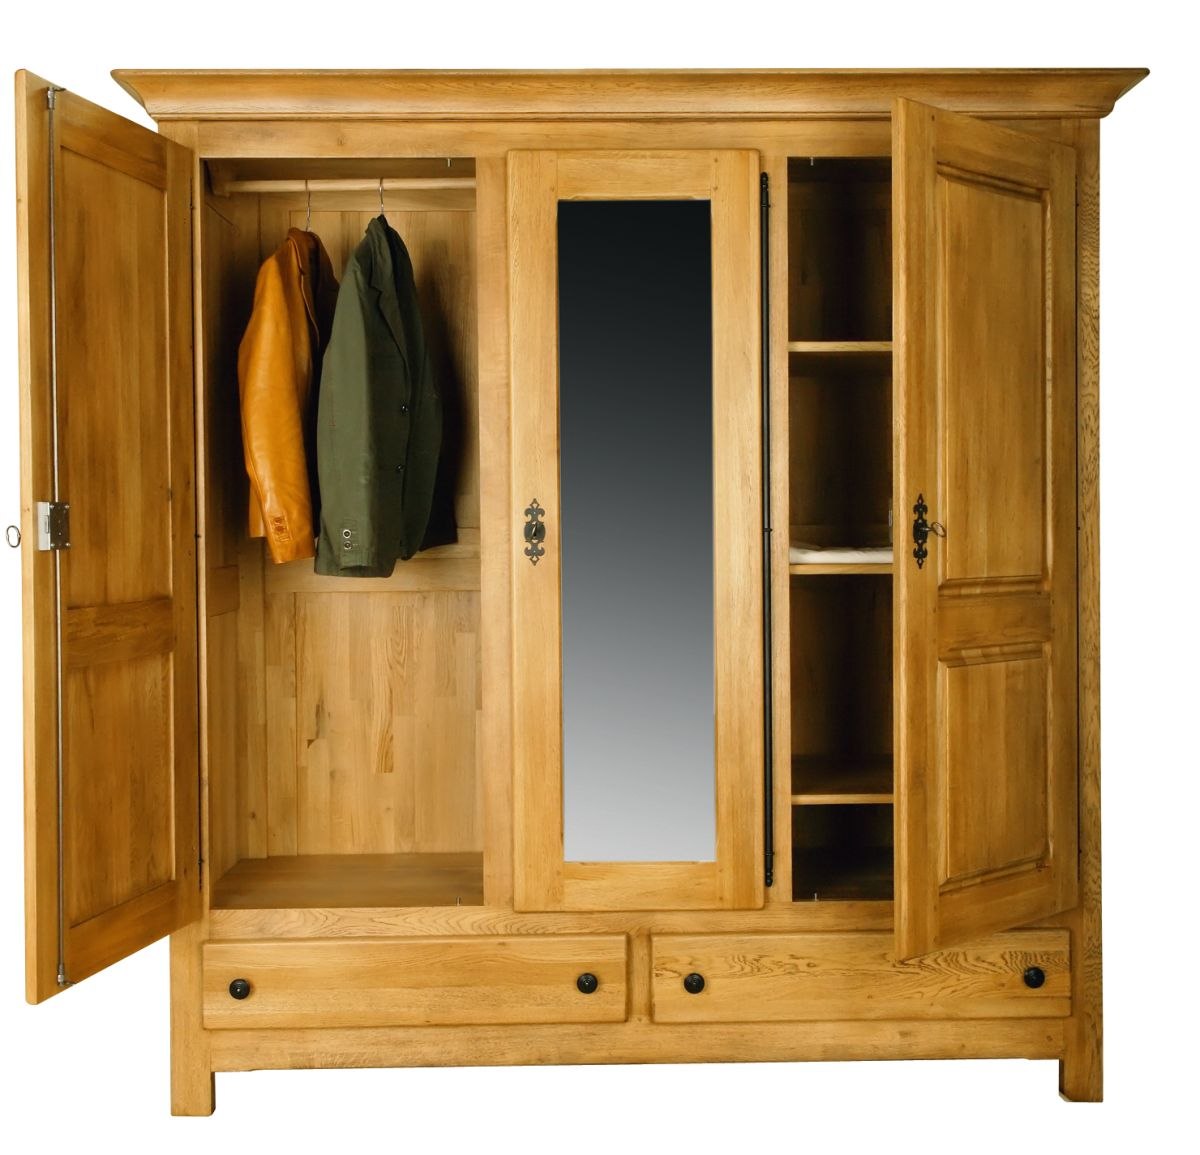 Solid Oak Wardrobe, 3 Doors and 2 Drawers